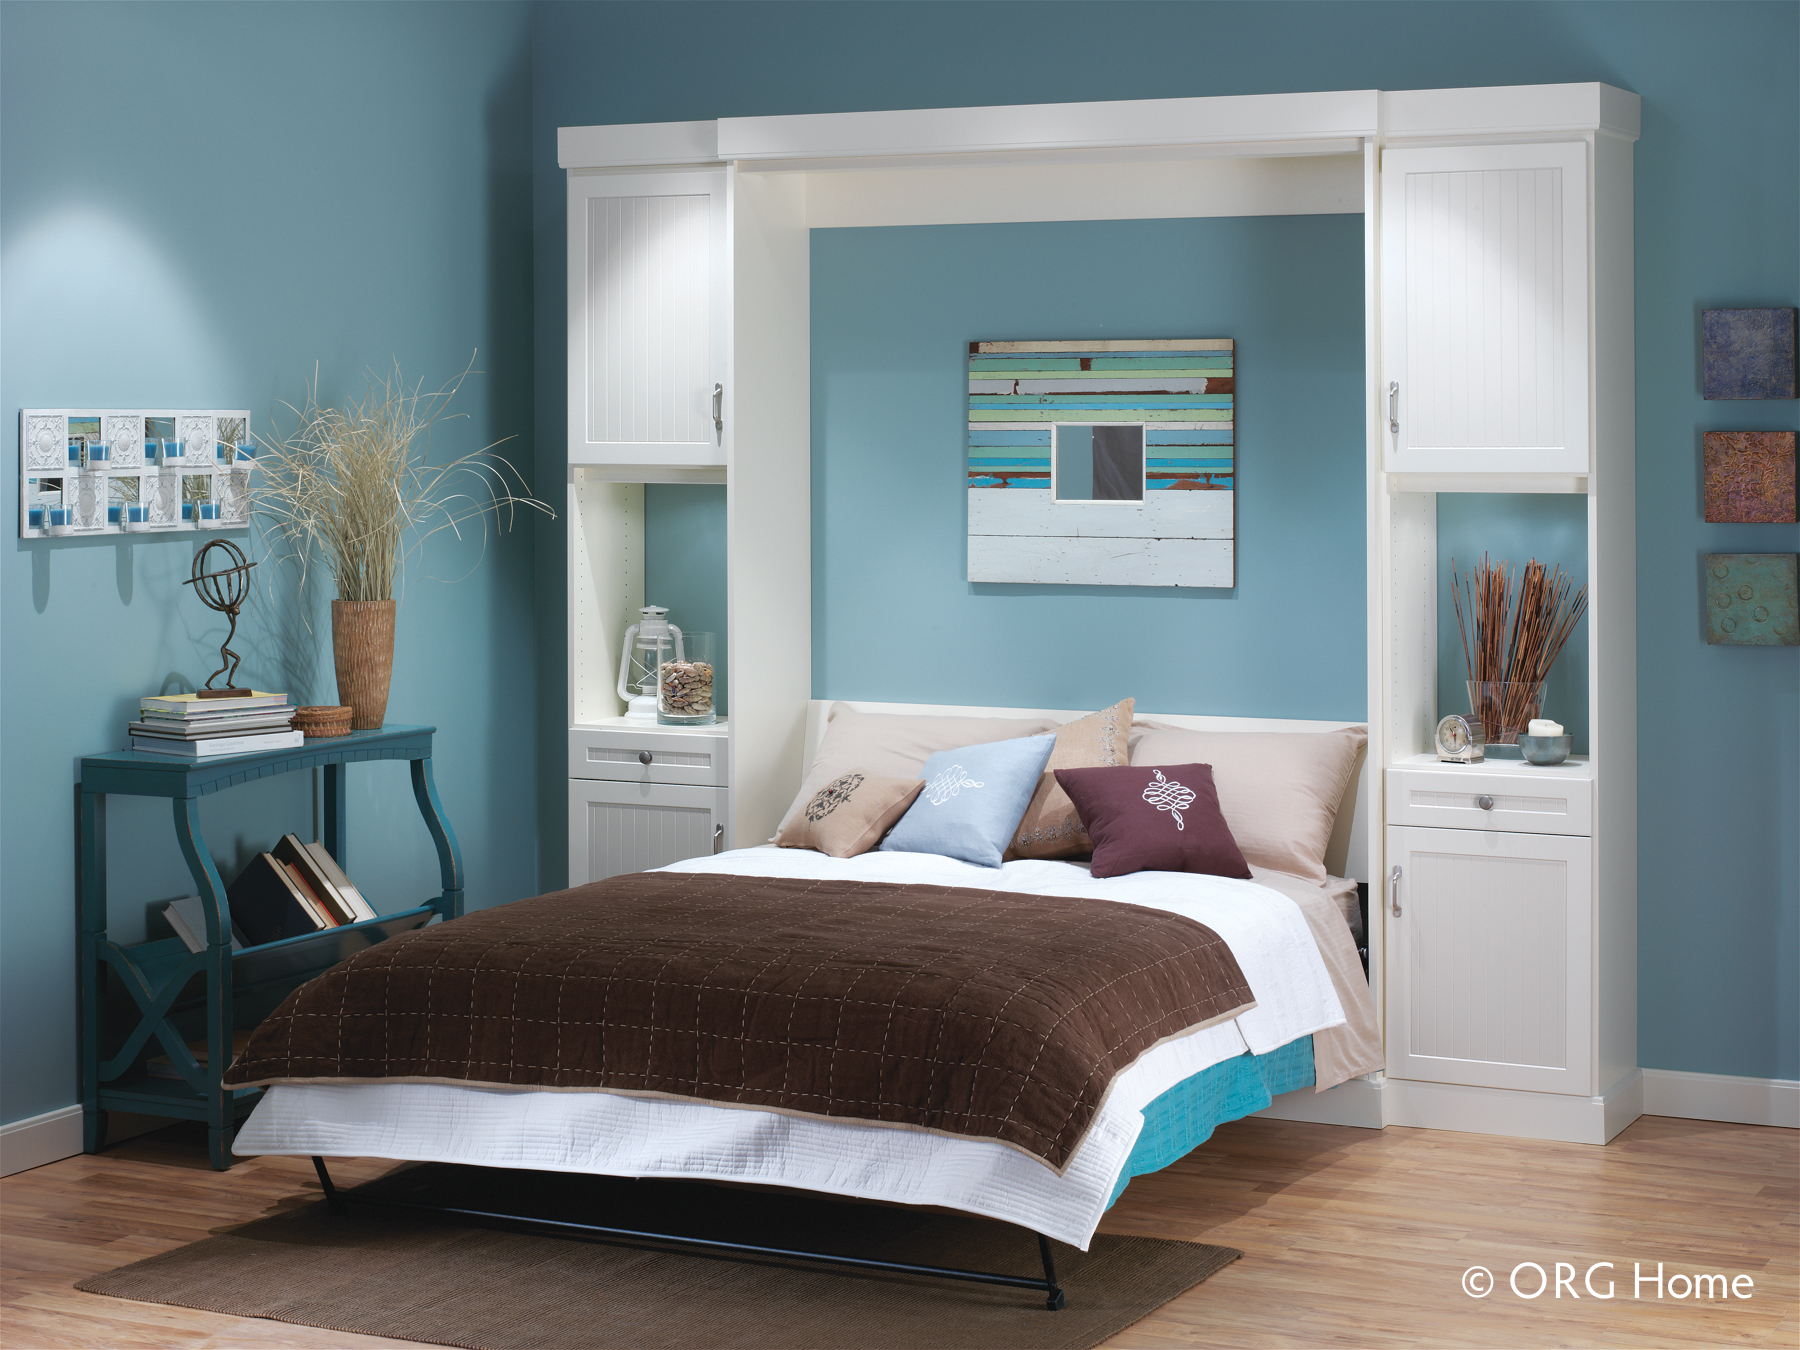 10 reasons to own a murphy bed by fred kumpel sponsored insights. Black Bedroom Furniture Sets. Home Design Ideas